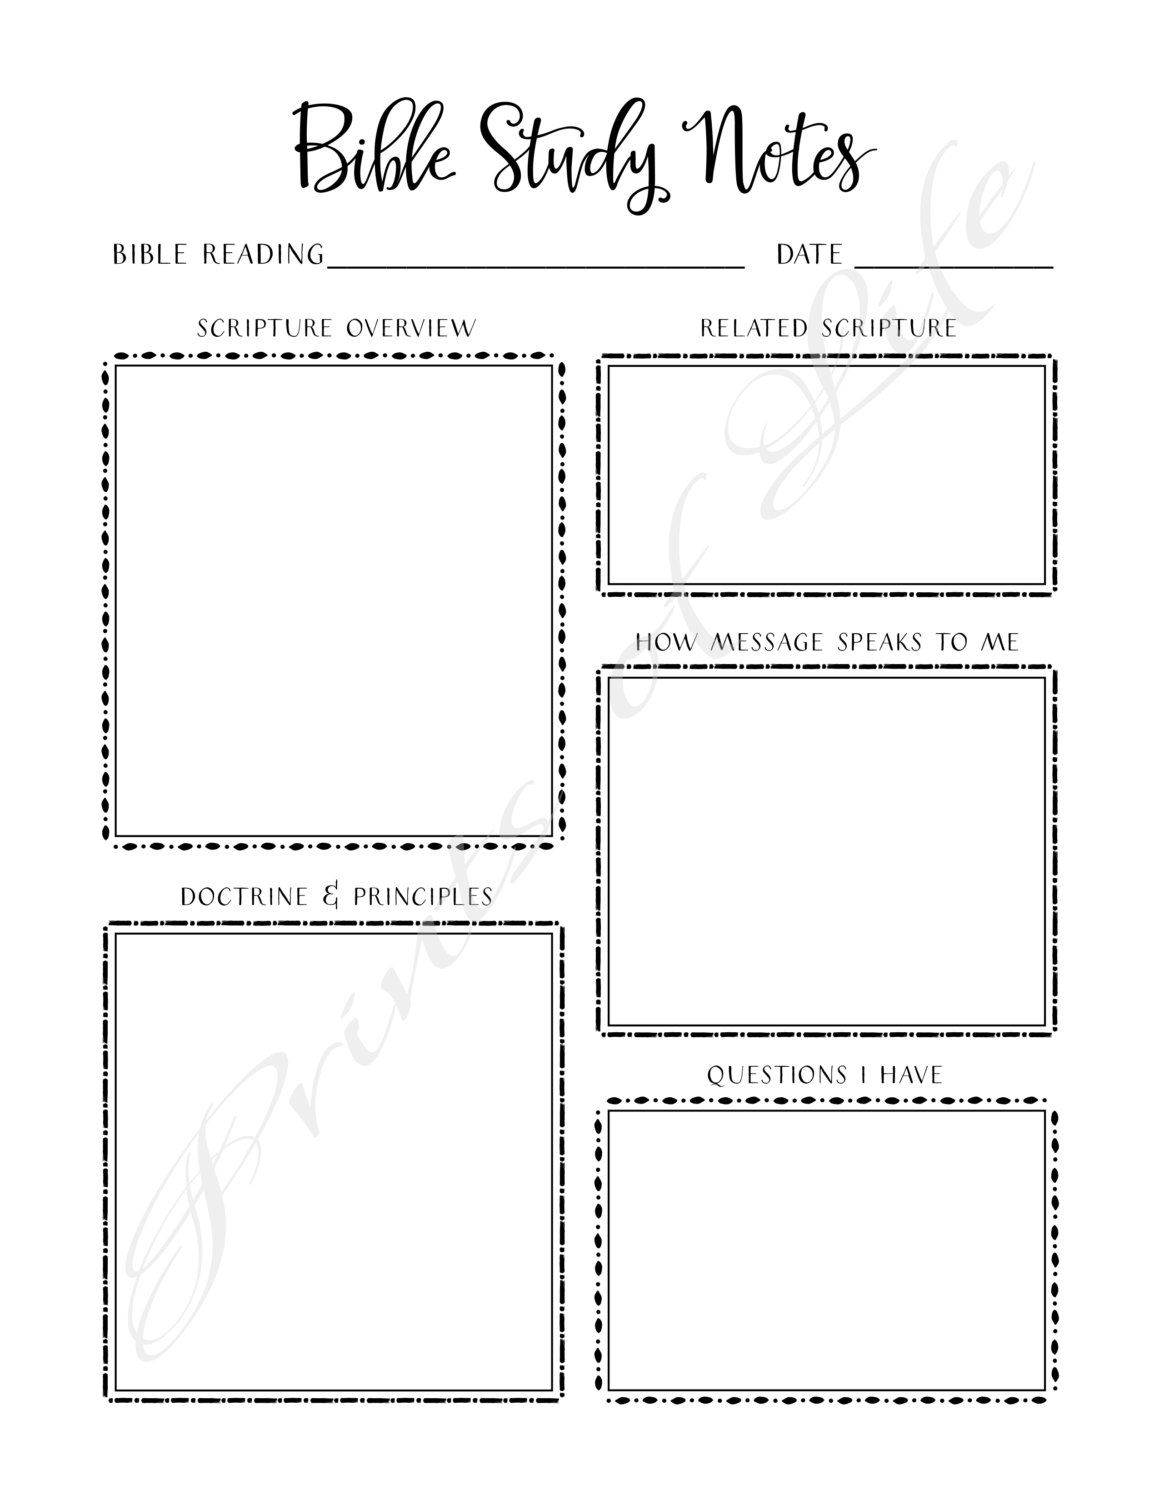 Bible Study Notes Printable Instant Download Church Journal Scripture Planner Worksheet